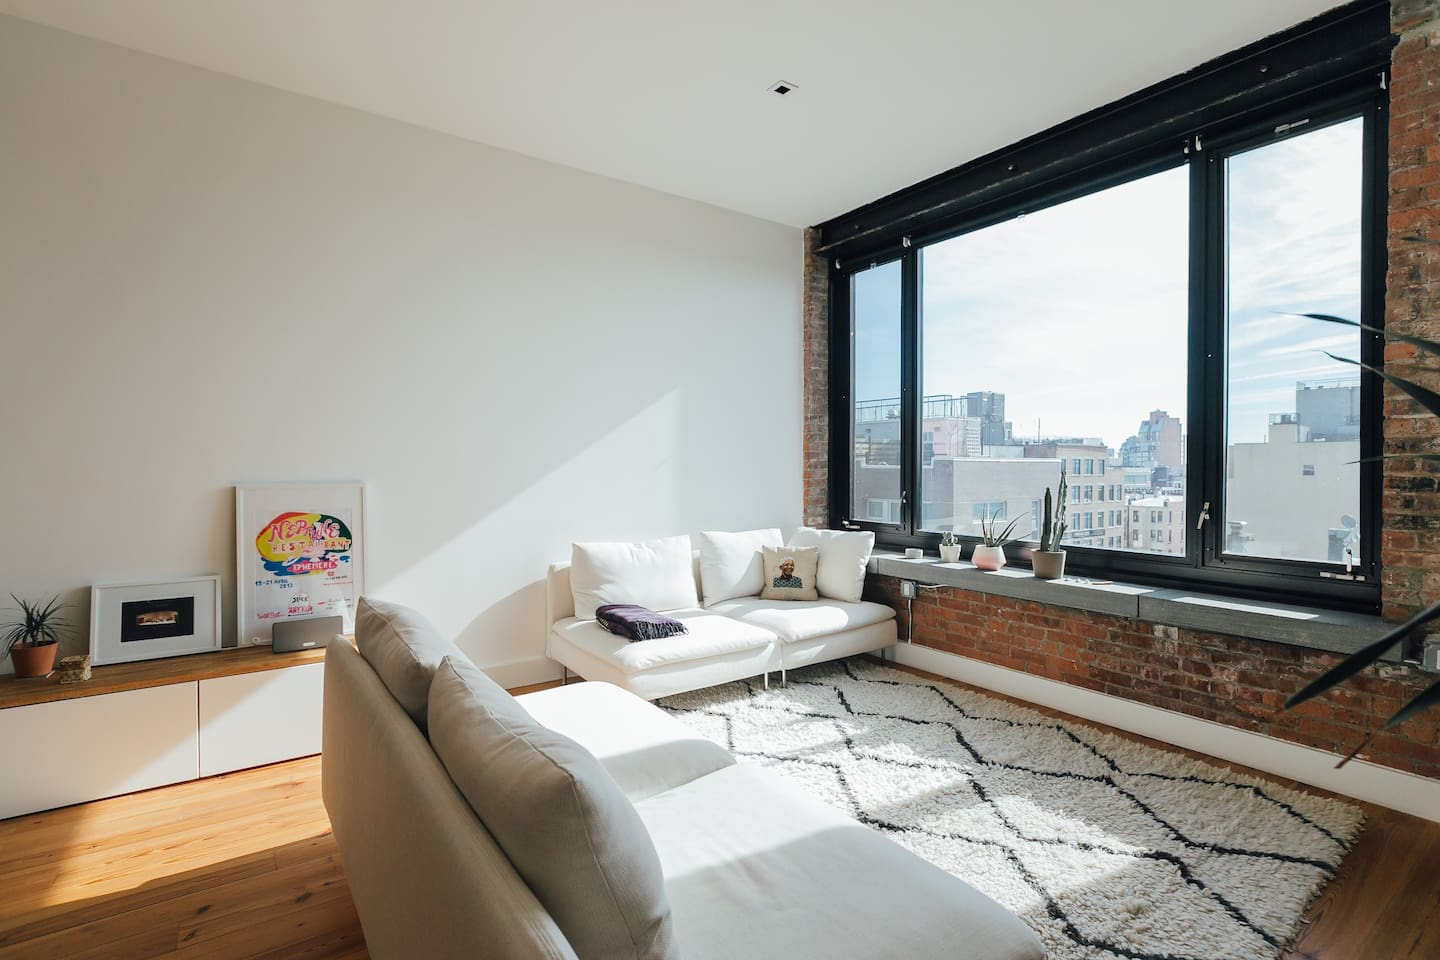 Living room with a large beautiful view overlooking Brooklyn